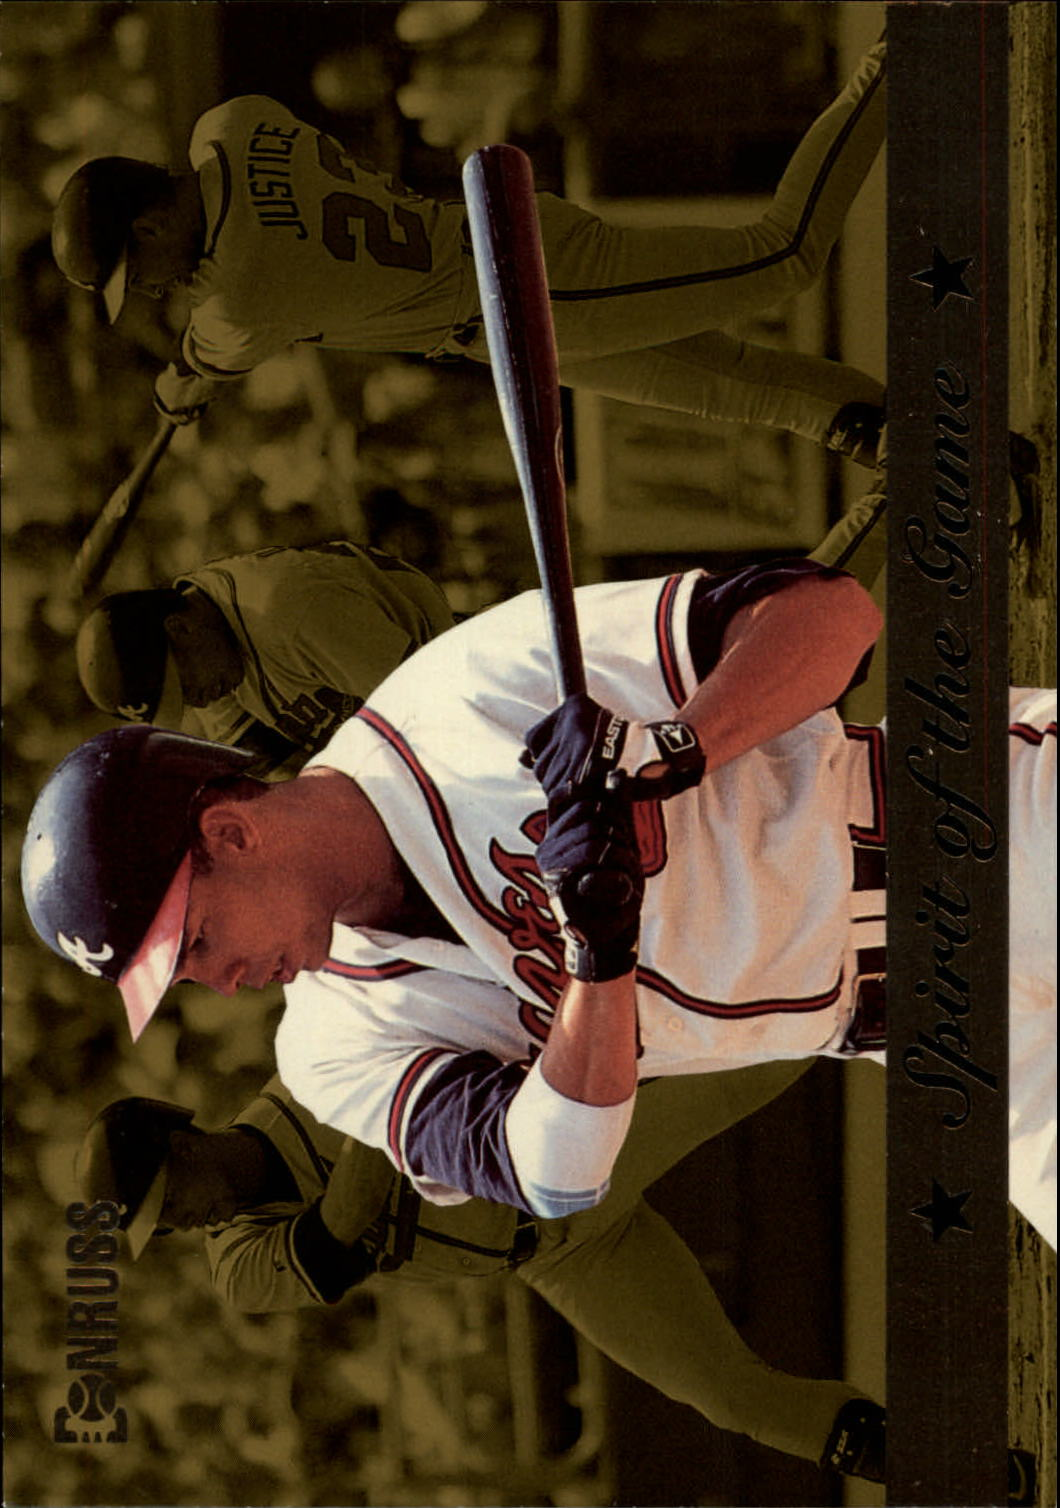 1994 Donruss Spirit of the Game Jumbos #8 David Justice